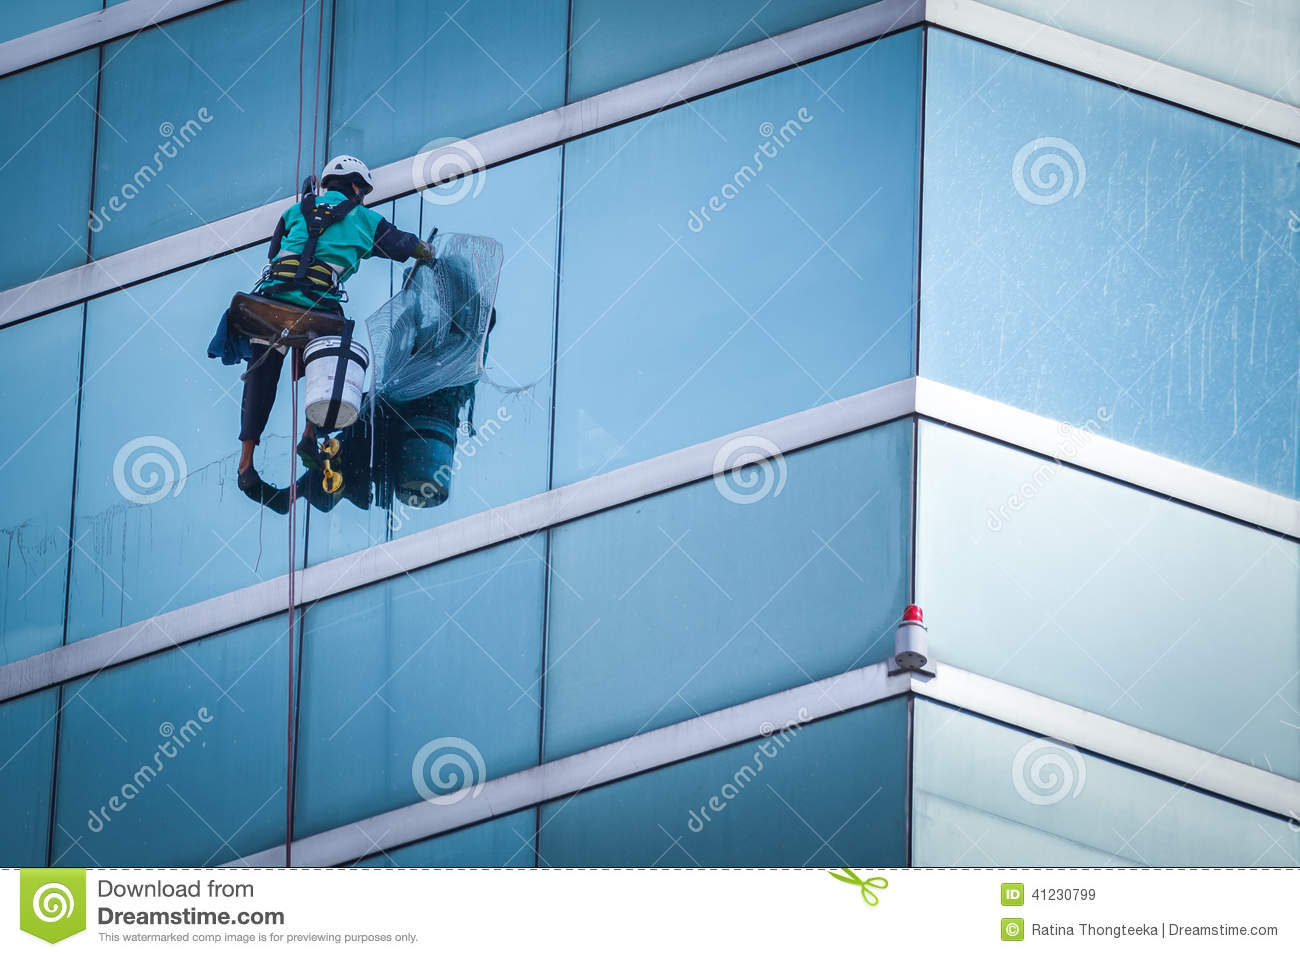 how to clean windows that are high up